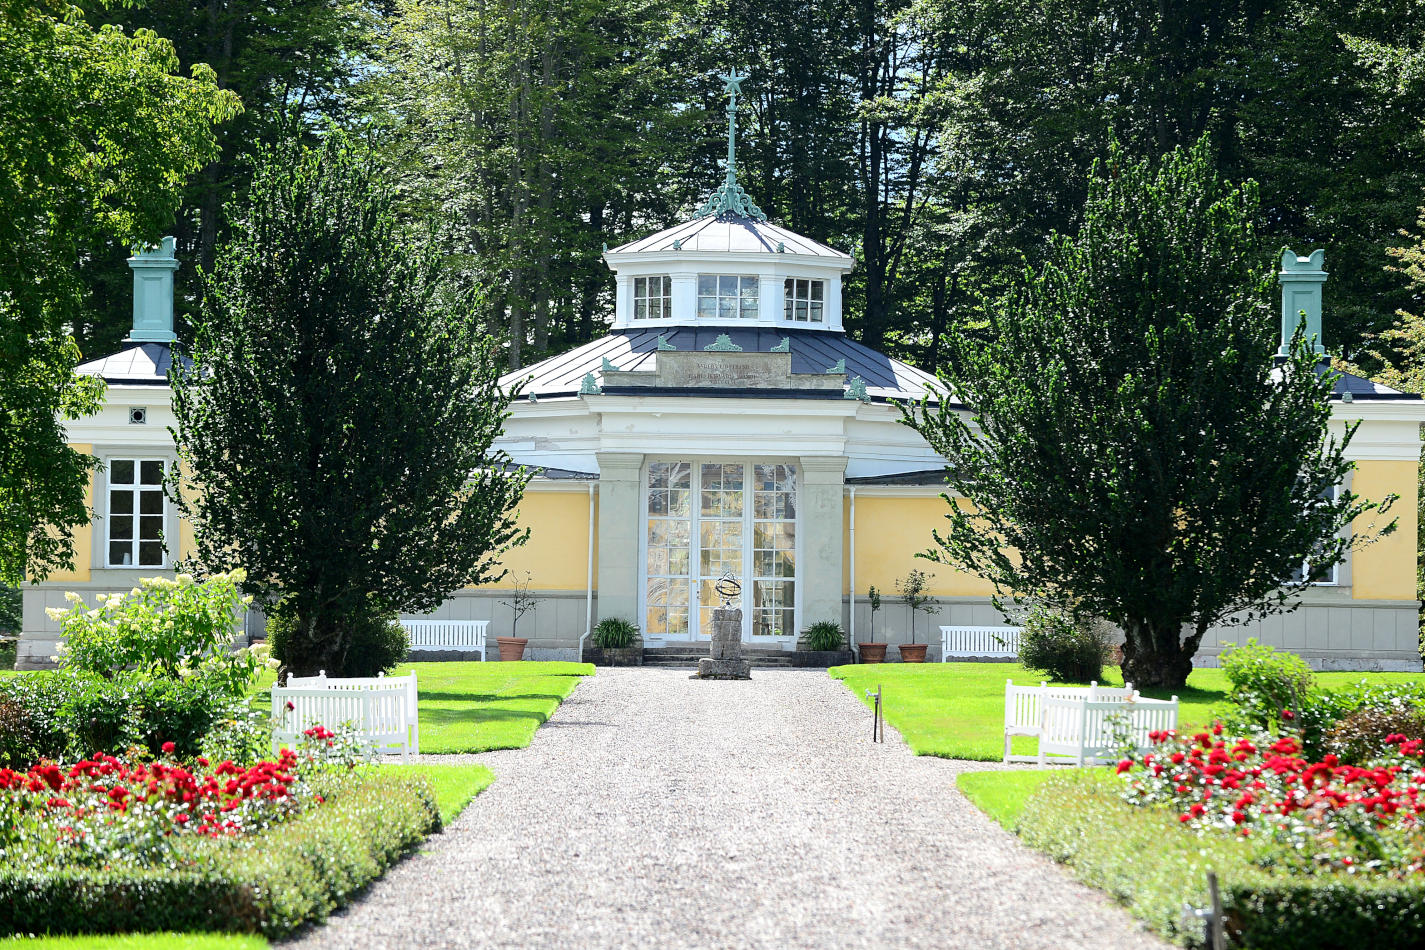 Katrineholm | Where castles and mansions are enthroned | Scan Magazine